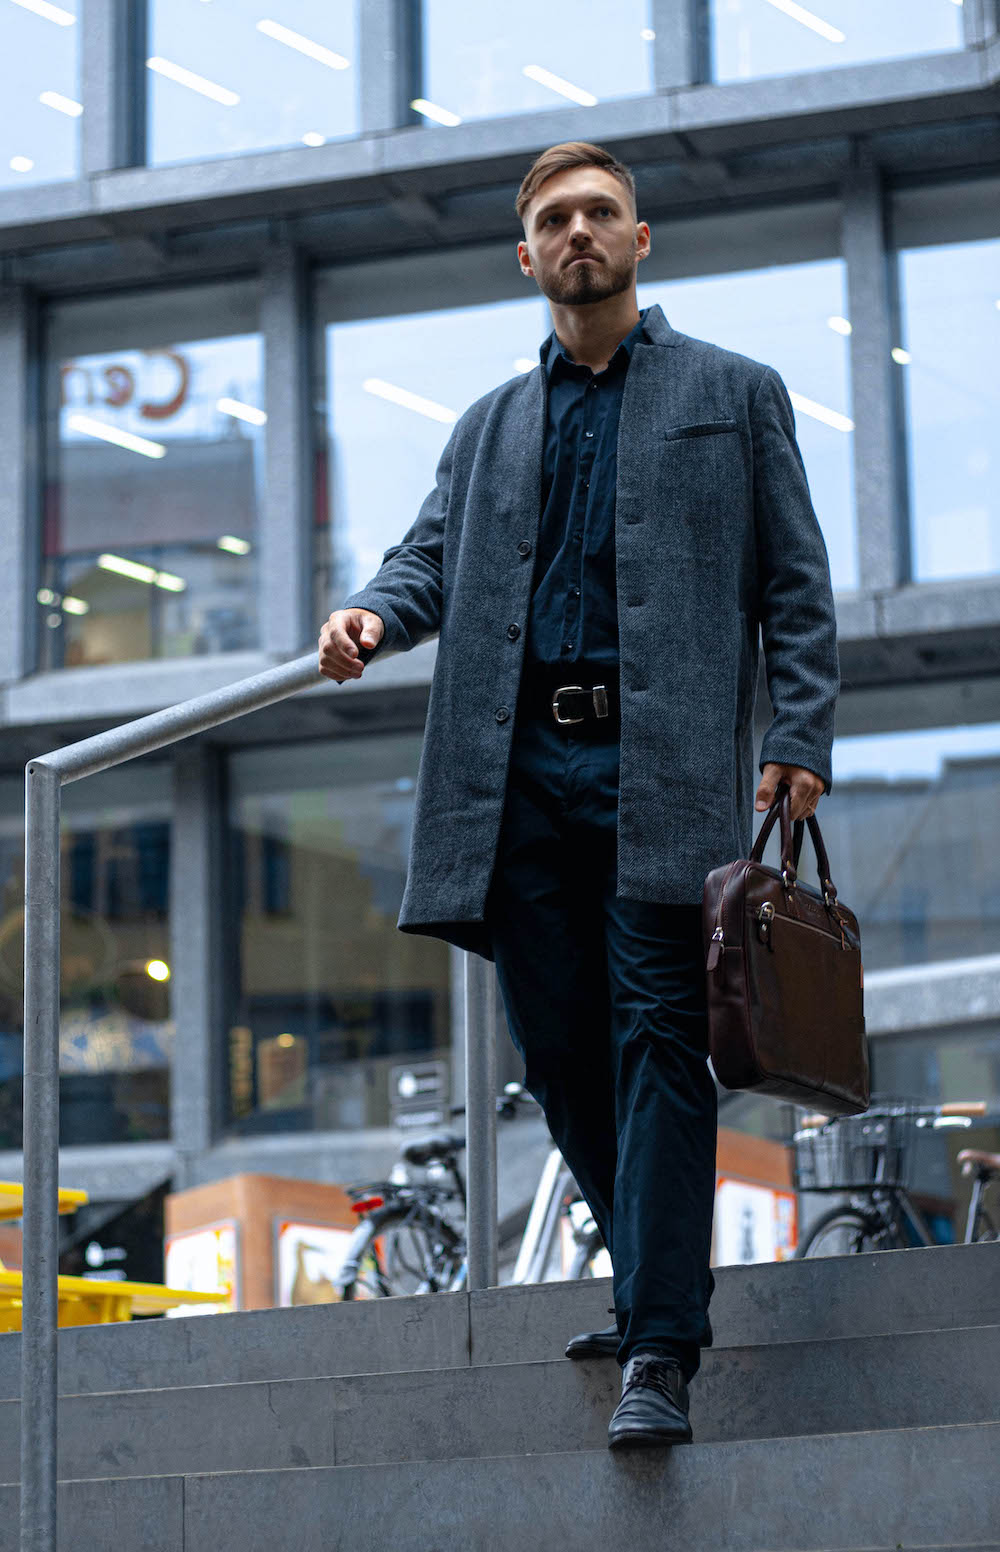 How to choose the right stylish men's bag for every outfit